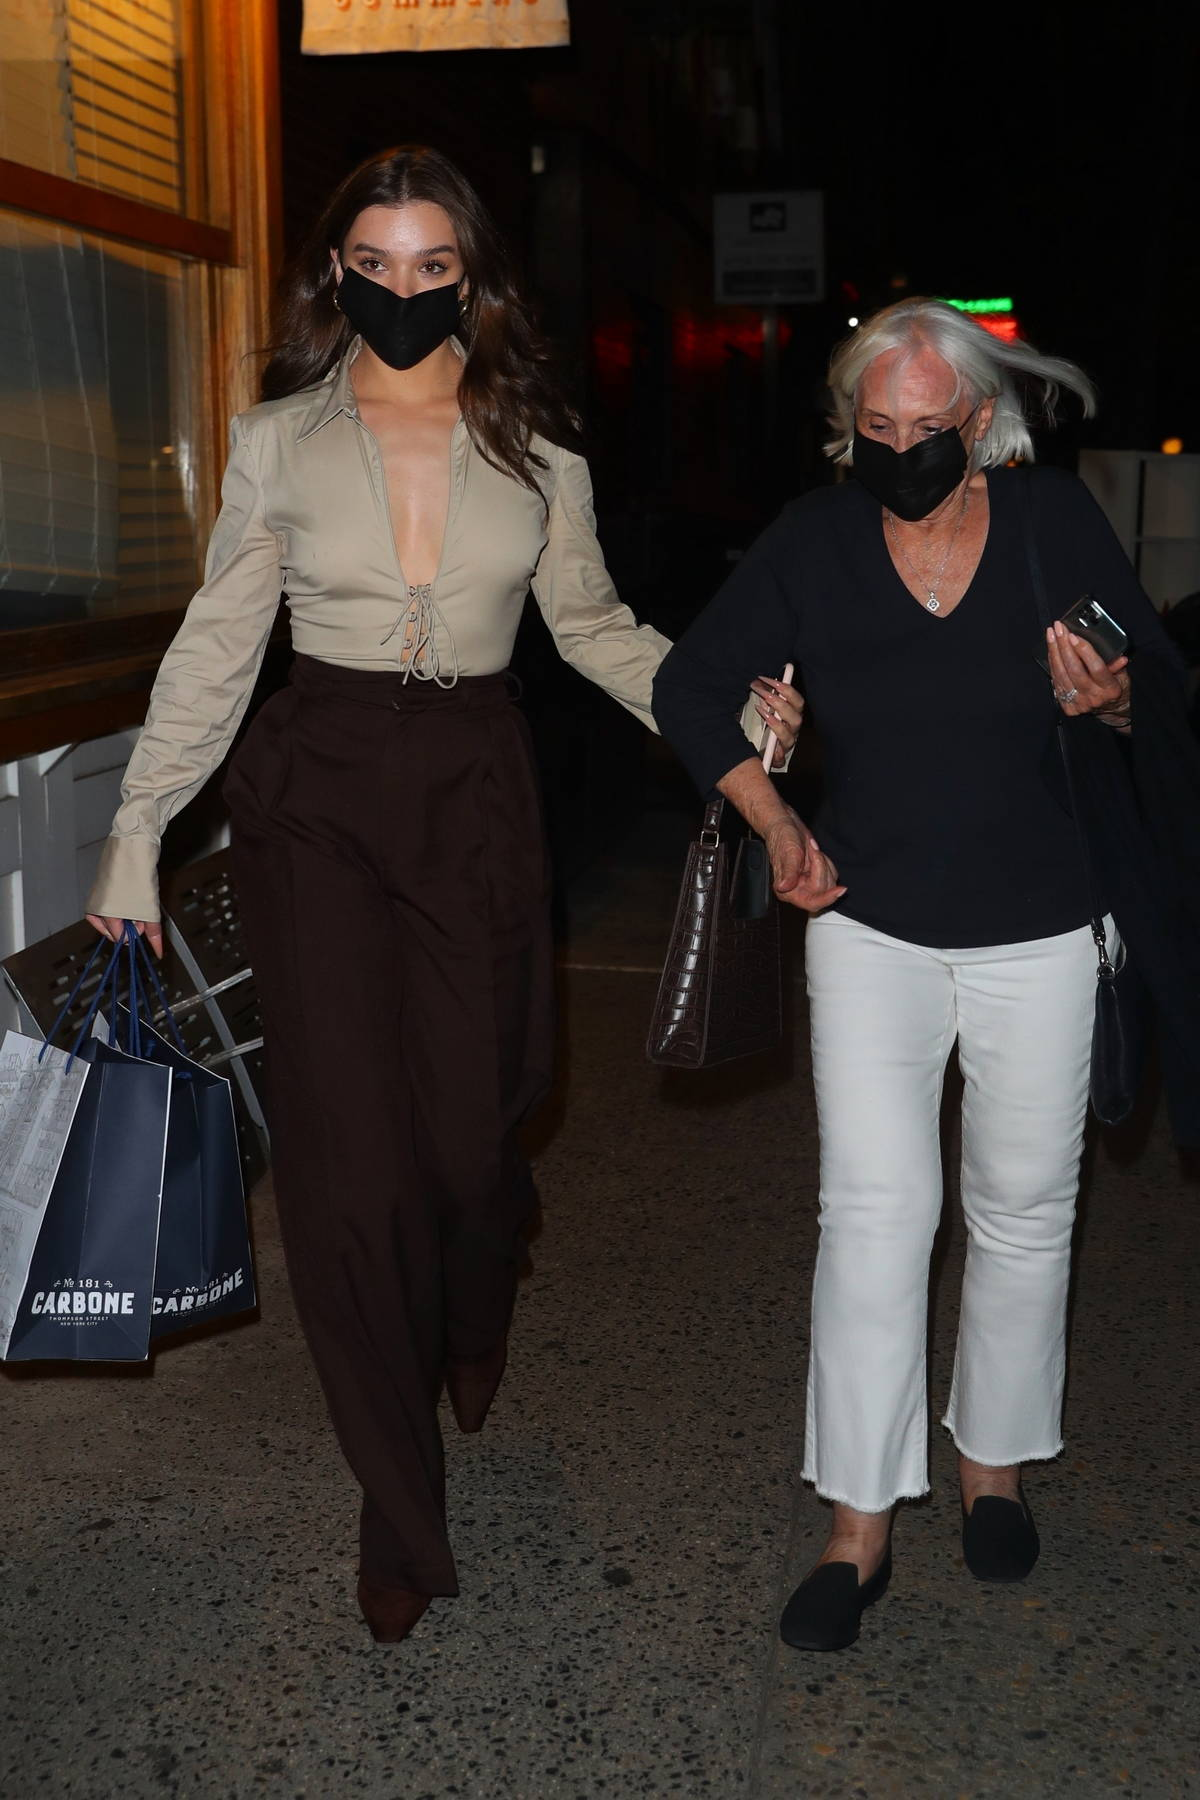 Hailee Steinfeld spotted leaving Carbone after having dinner with her grandmother in New York City